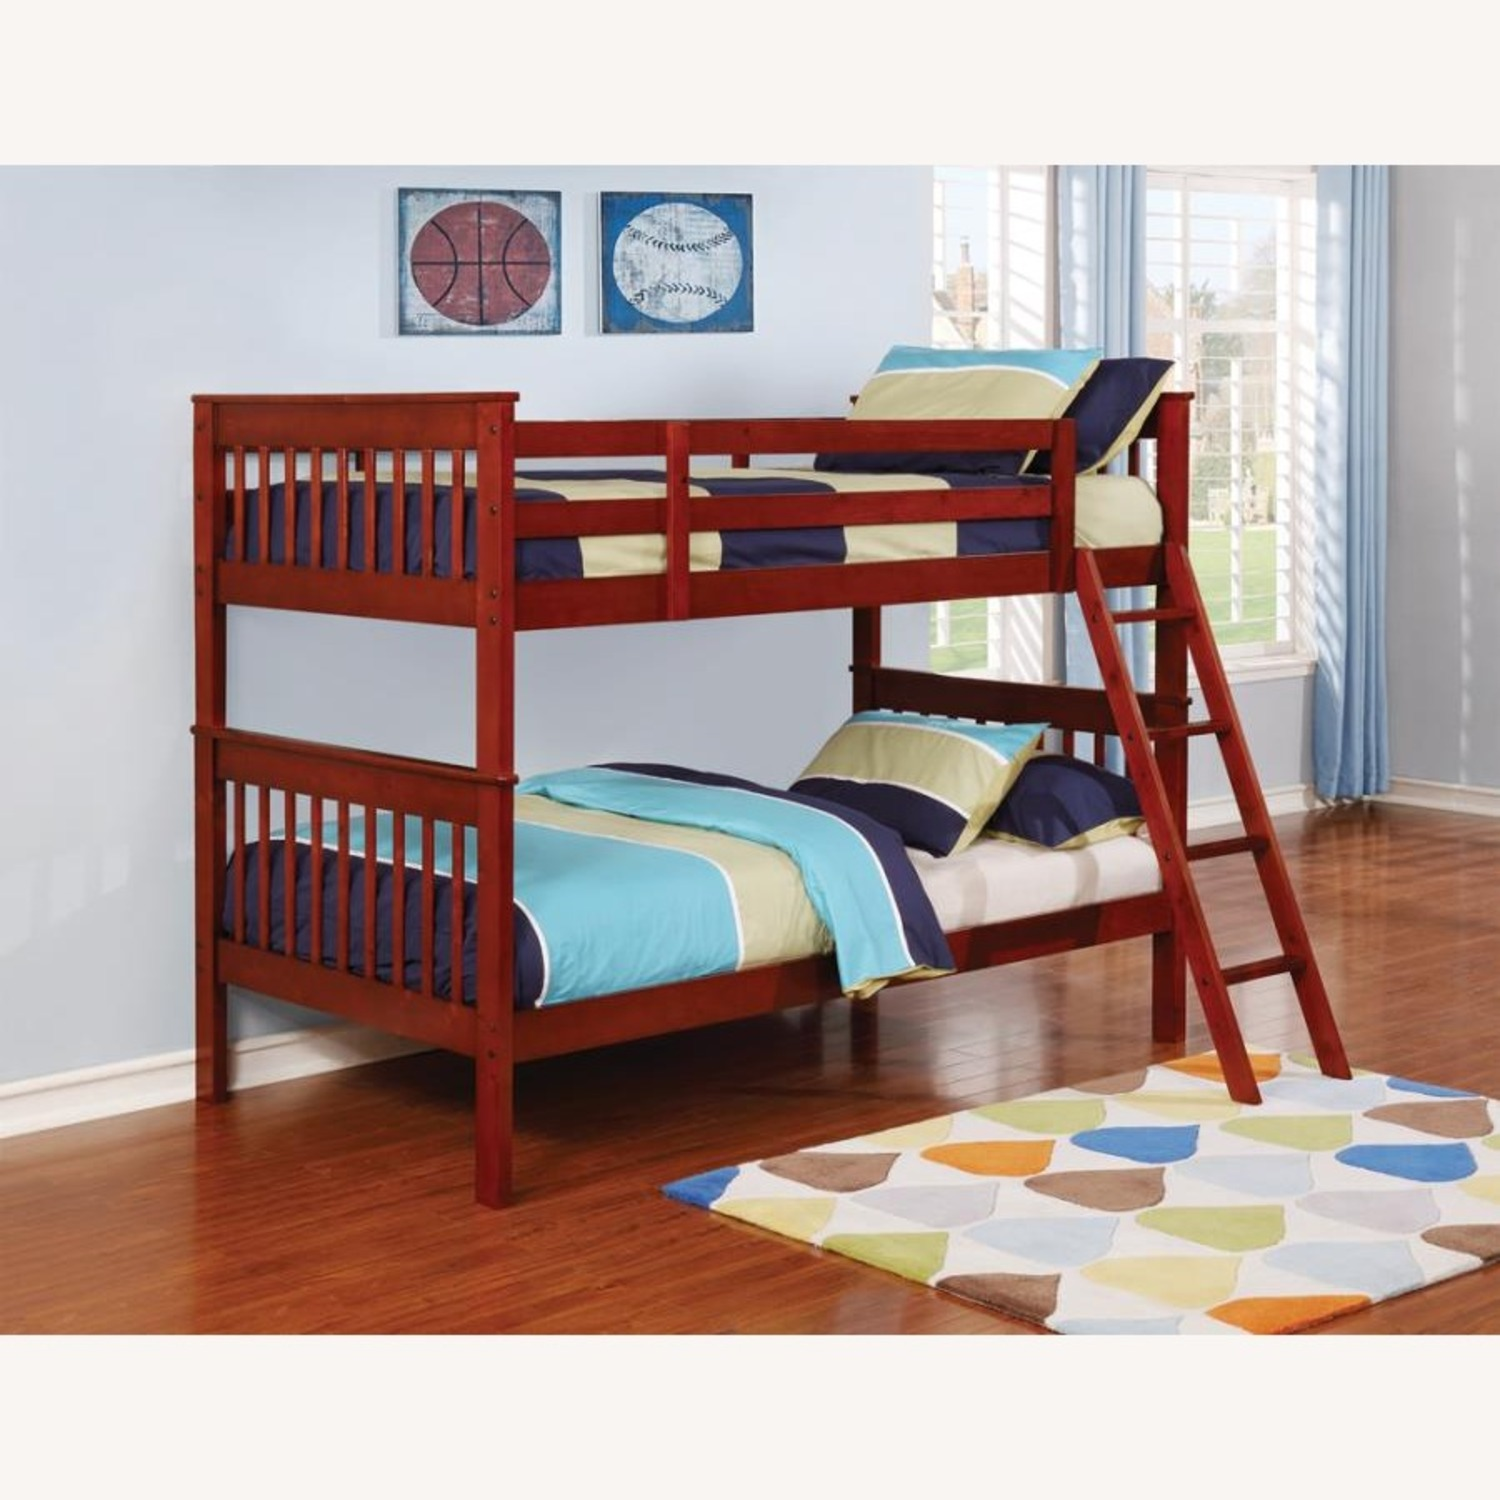 Bunk Bed In Chestnut W/ Slatted Head & Footboards - image-2